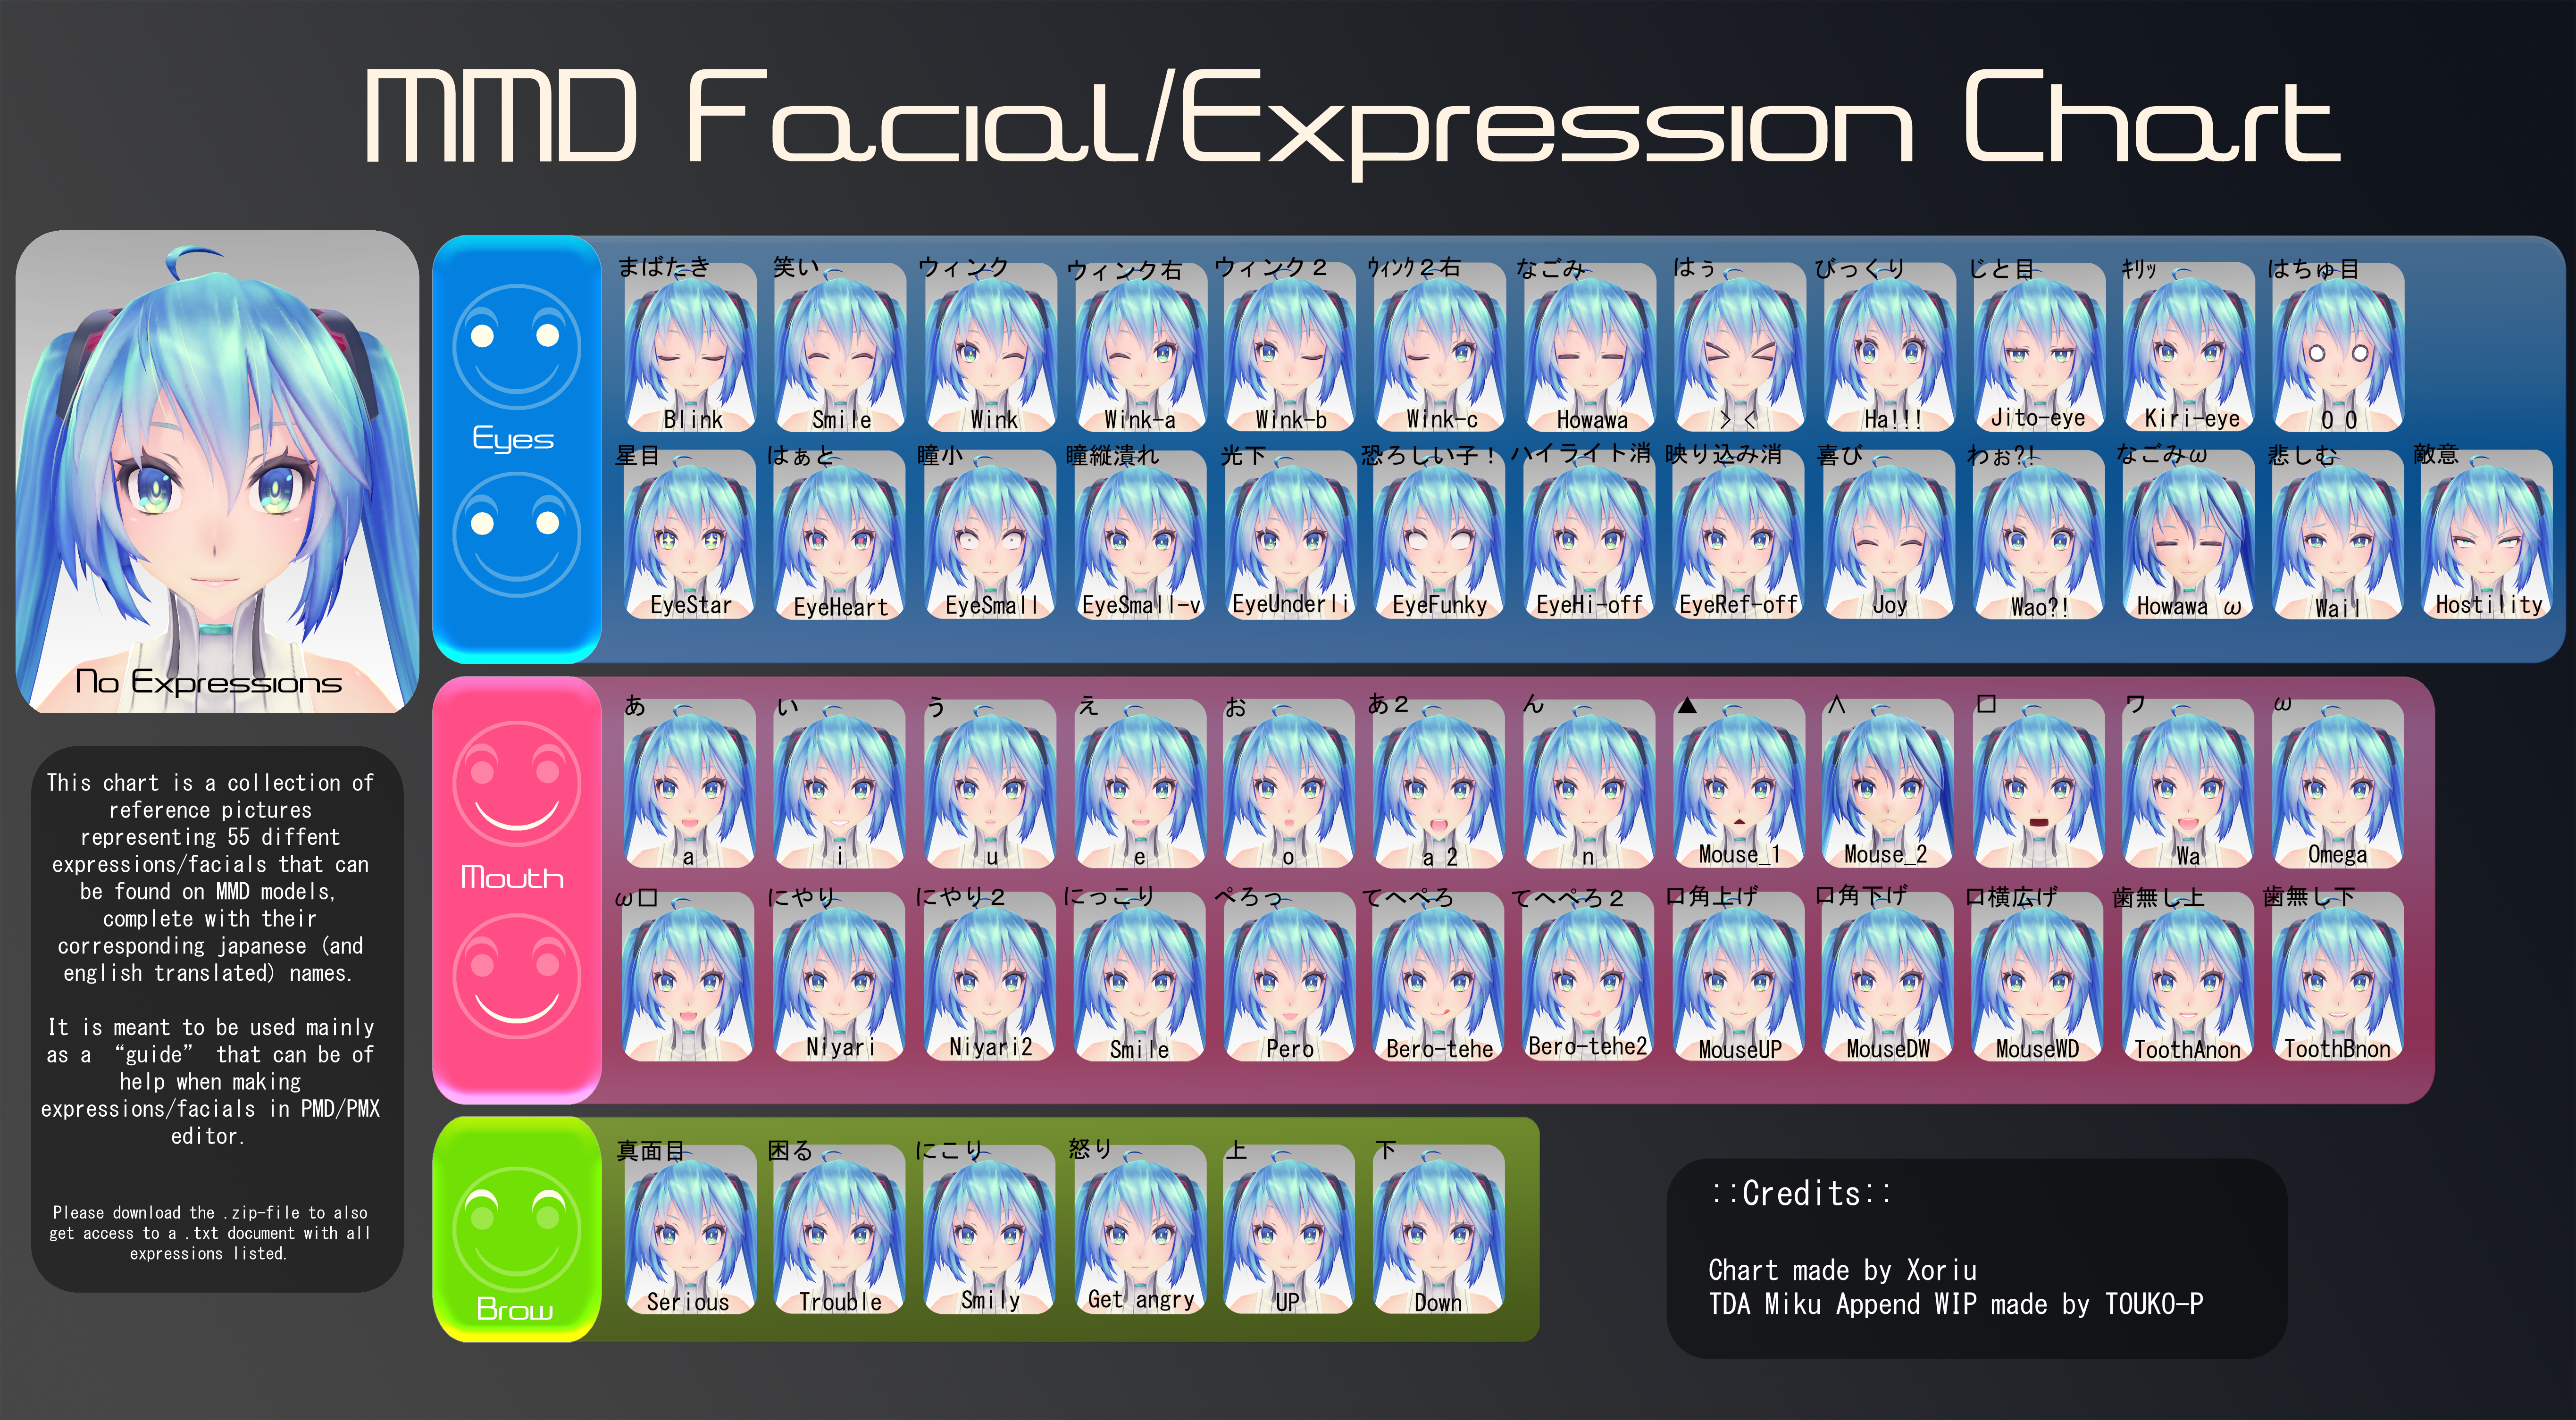 MMD Facial/Expressions Chart by Xoriu on DeviantArt